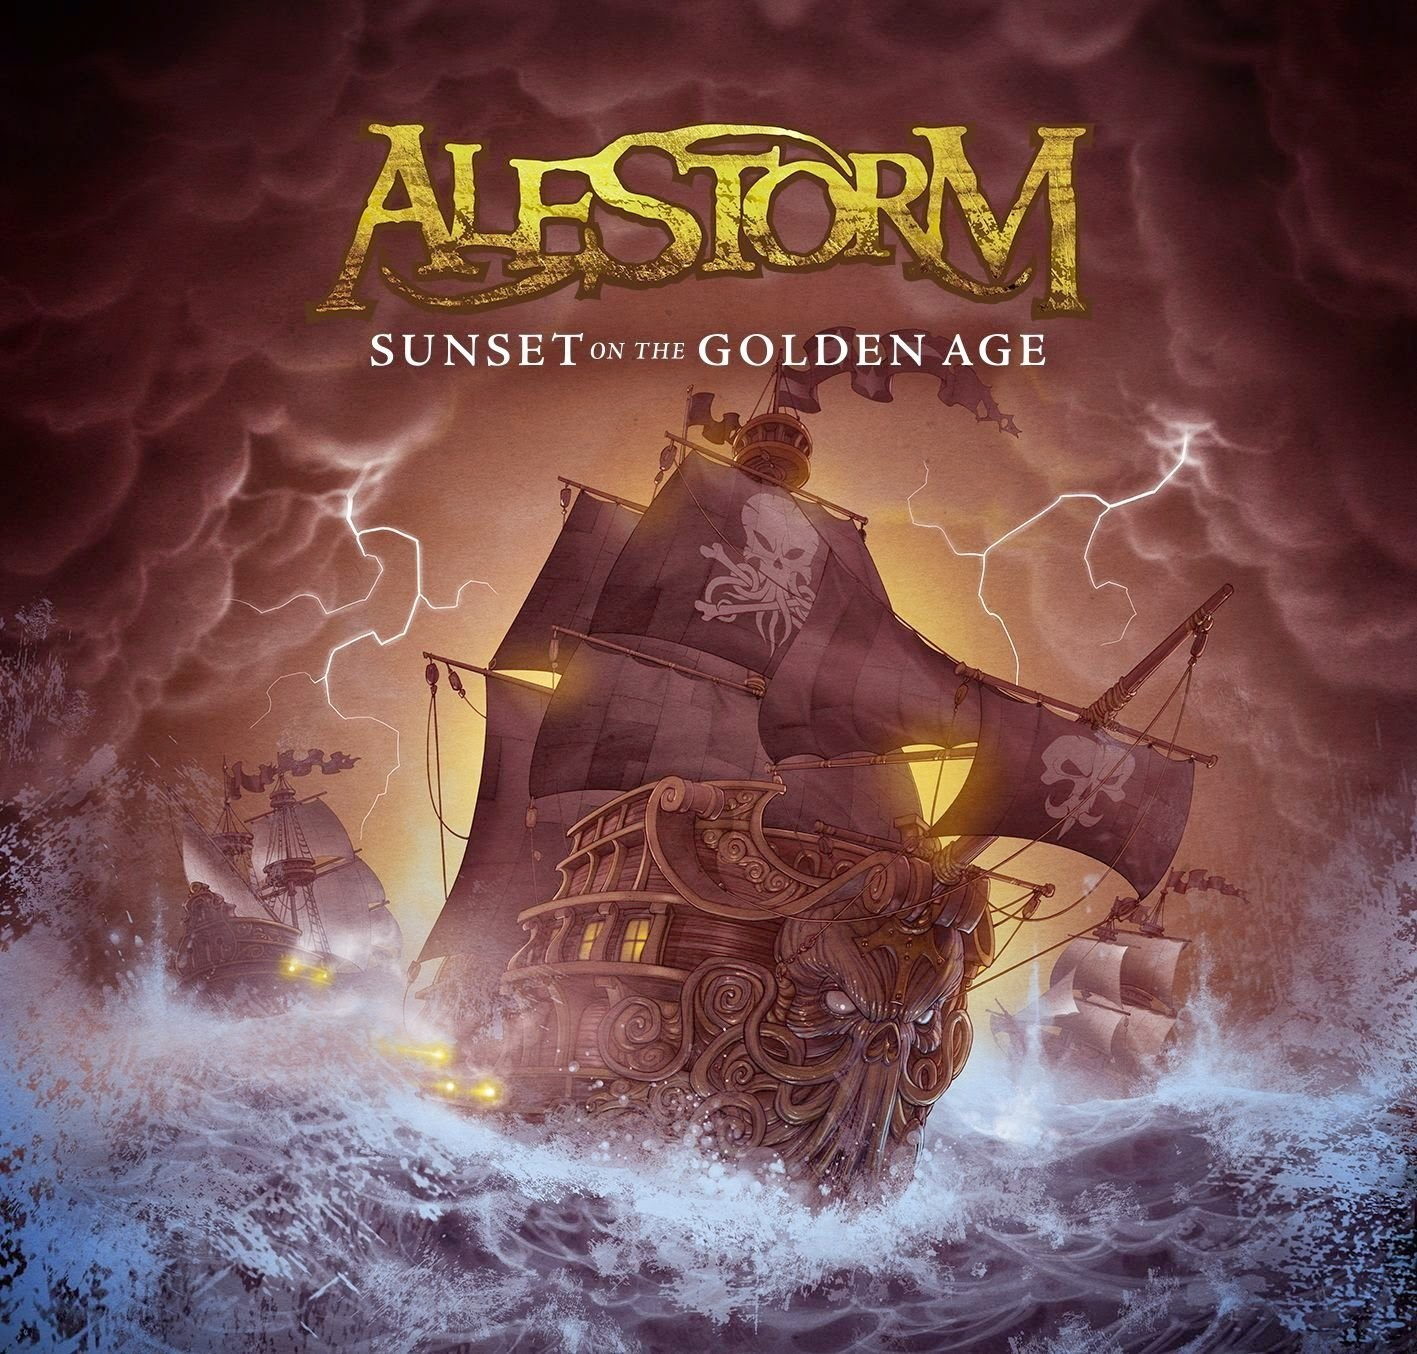 Alestorm - Sunset on the Golden Age [Limited Edition] (2014)